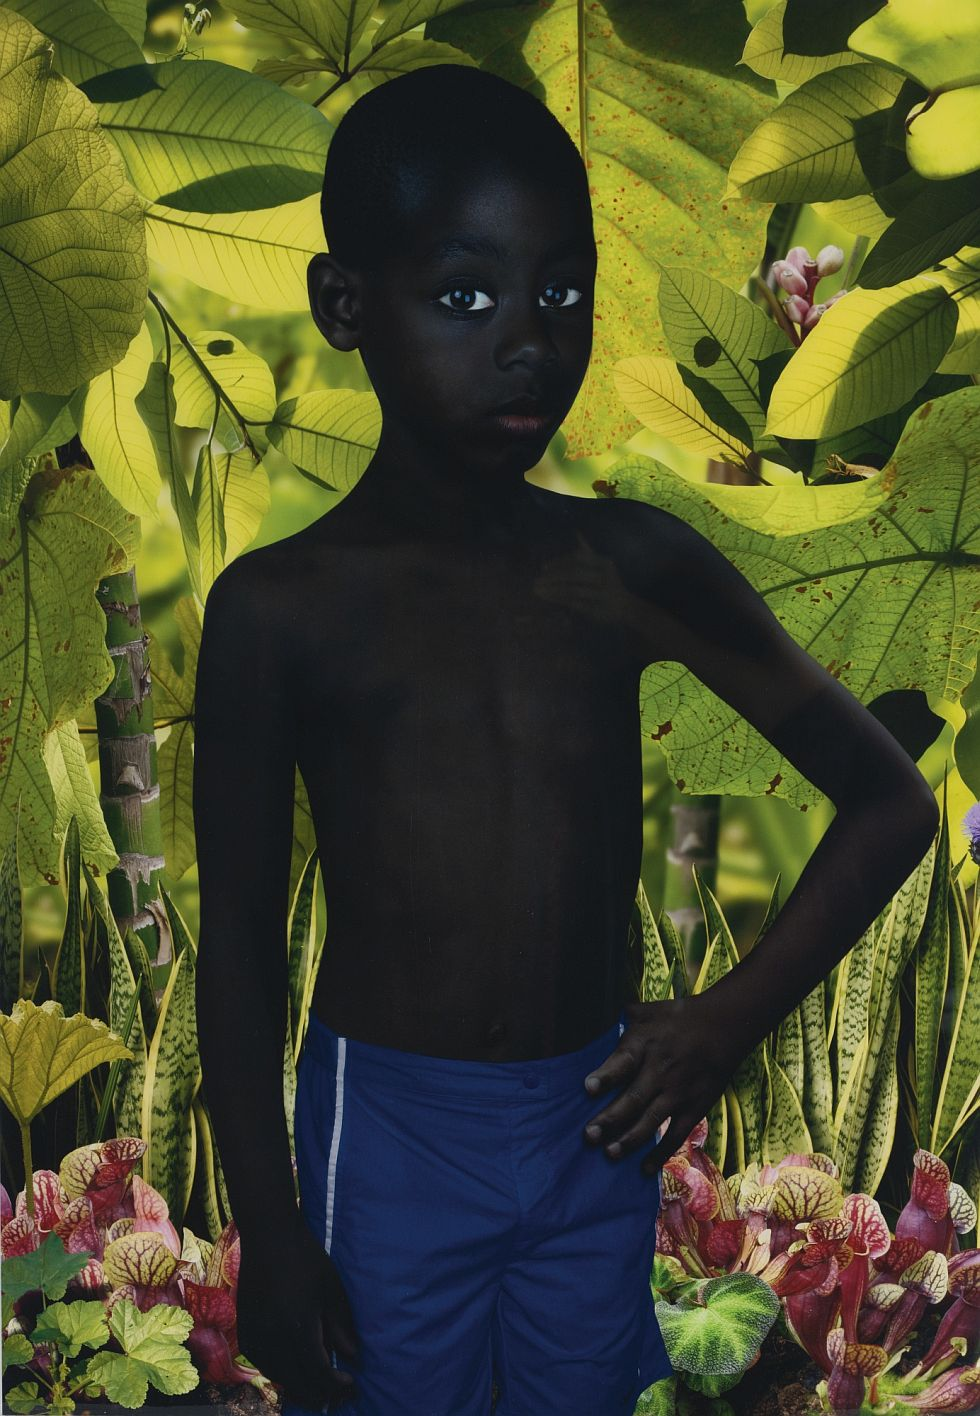 ruud-van-empel-beetleshuxley-in-london-07